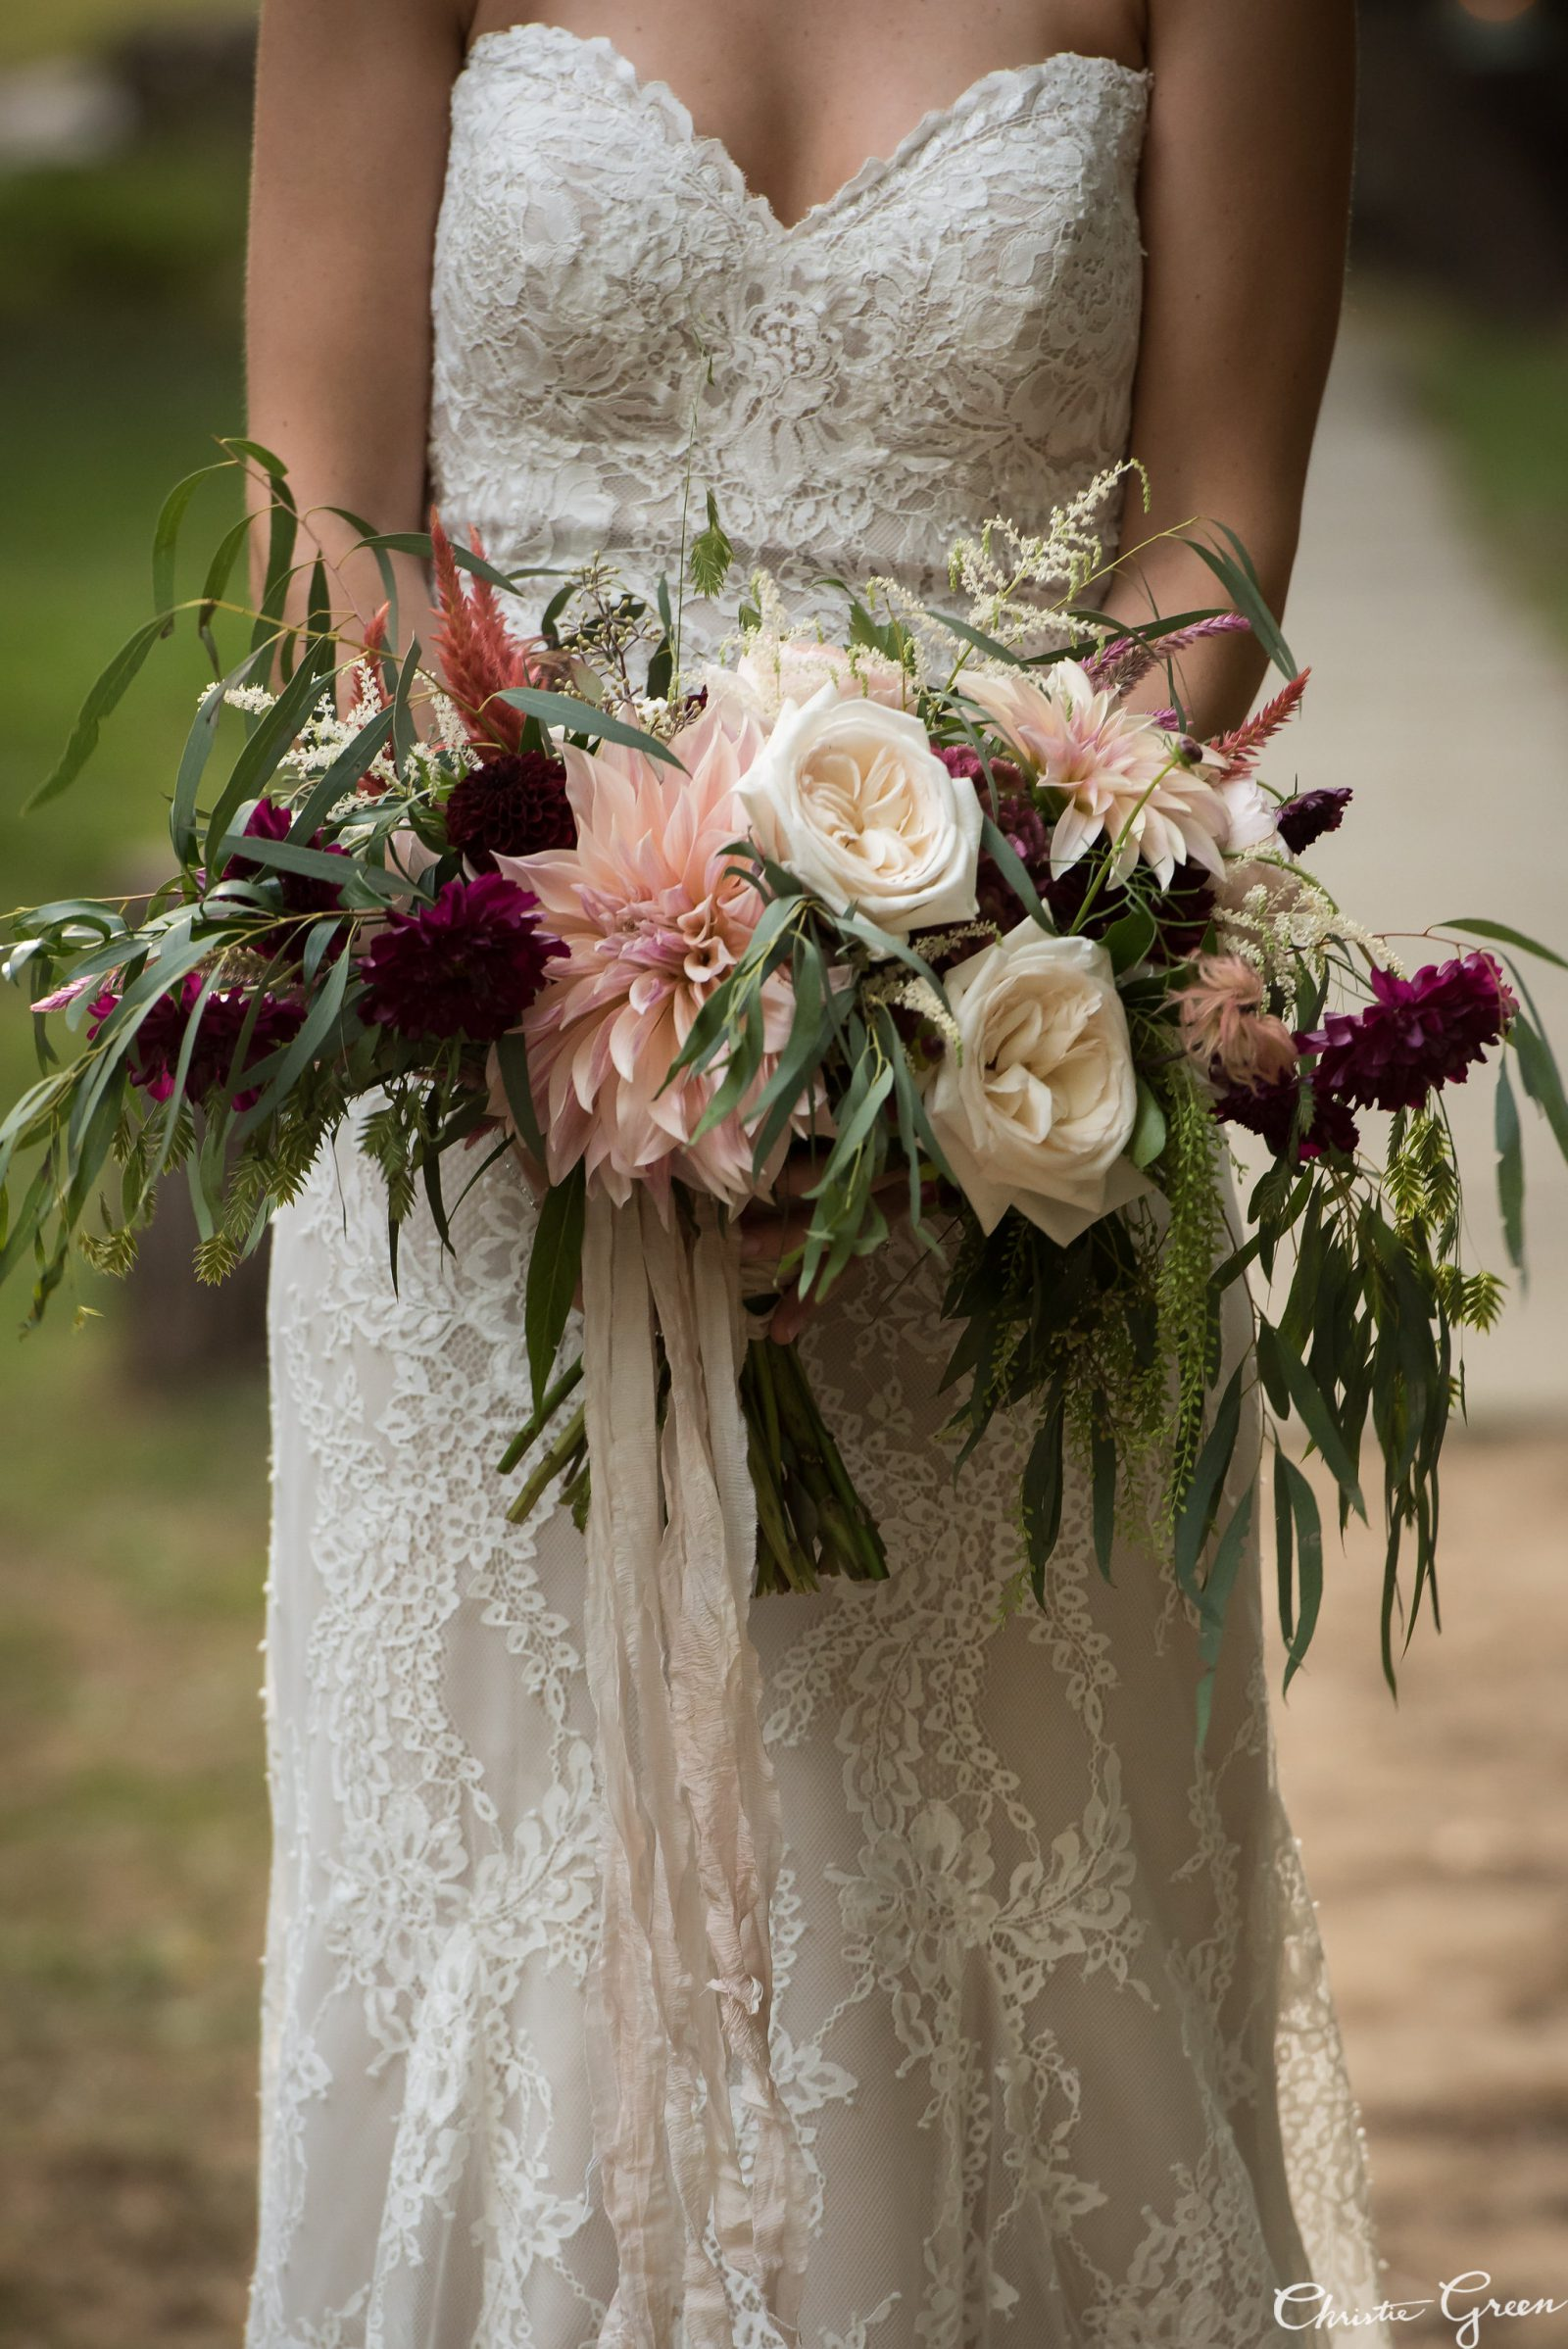 Bride in lace Justin Alexander gown holding stunning summer bridal bouquet filled with dahlias and roses by Fresh Designs Florist. Photo by Christie Green Photography